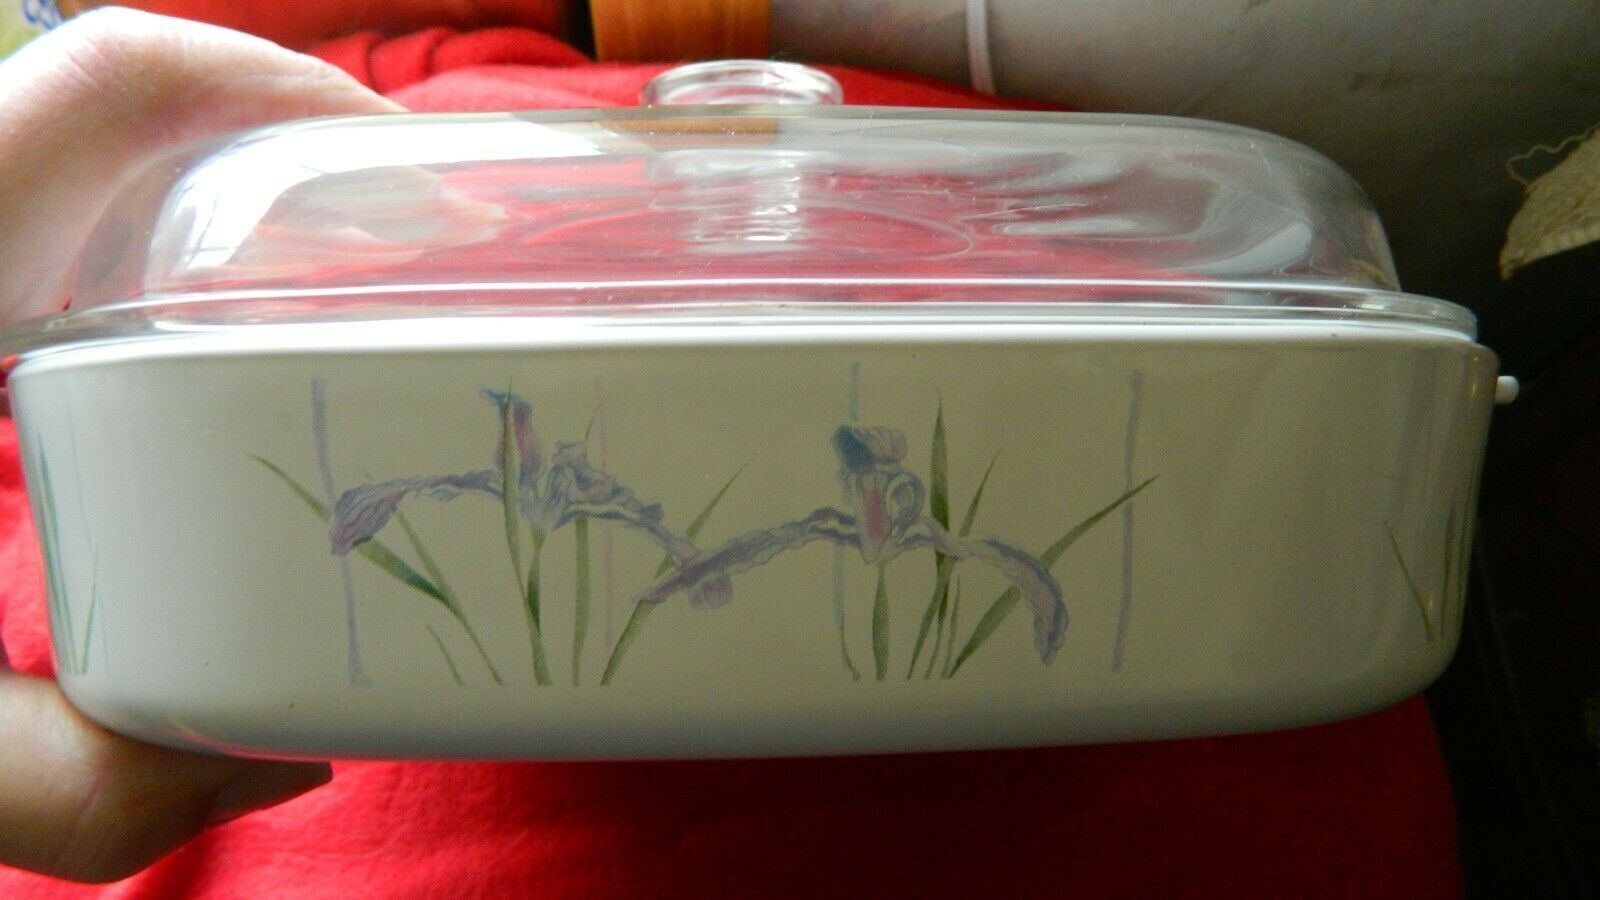 Primary image for CORNING WARE A-10-B SHADOW IRIS CASSEROLE 2.5 LITER WITH PYREX CLEAR LID